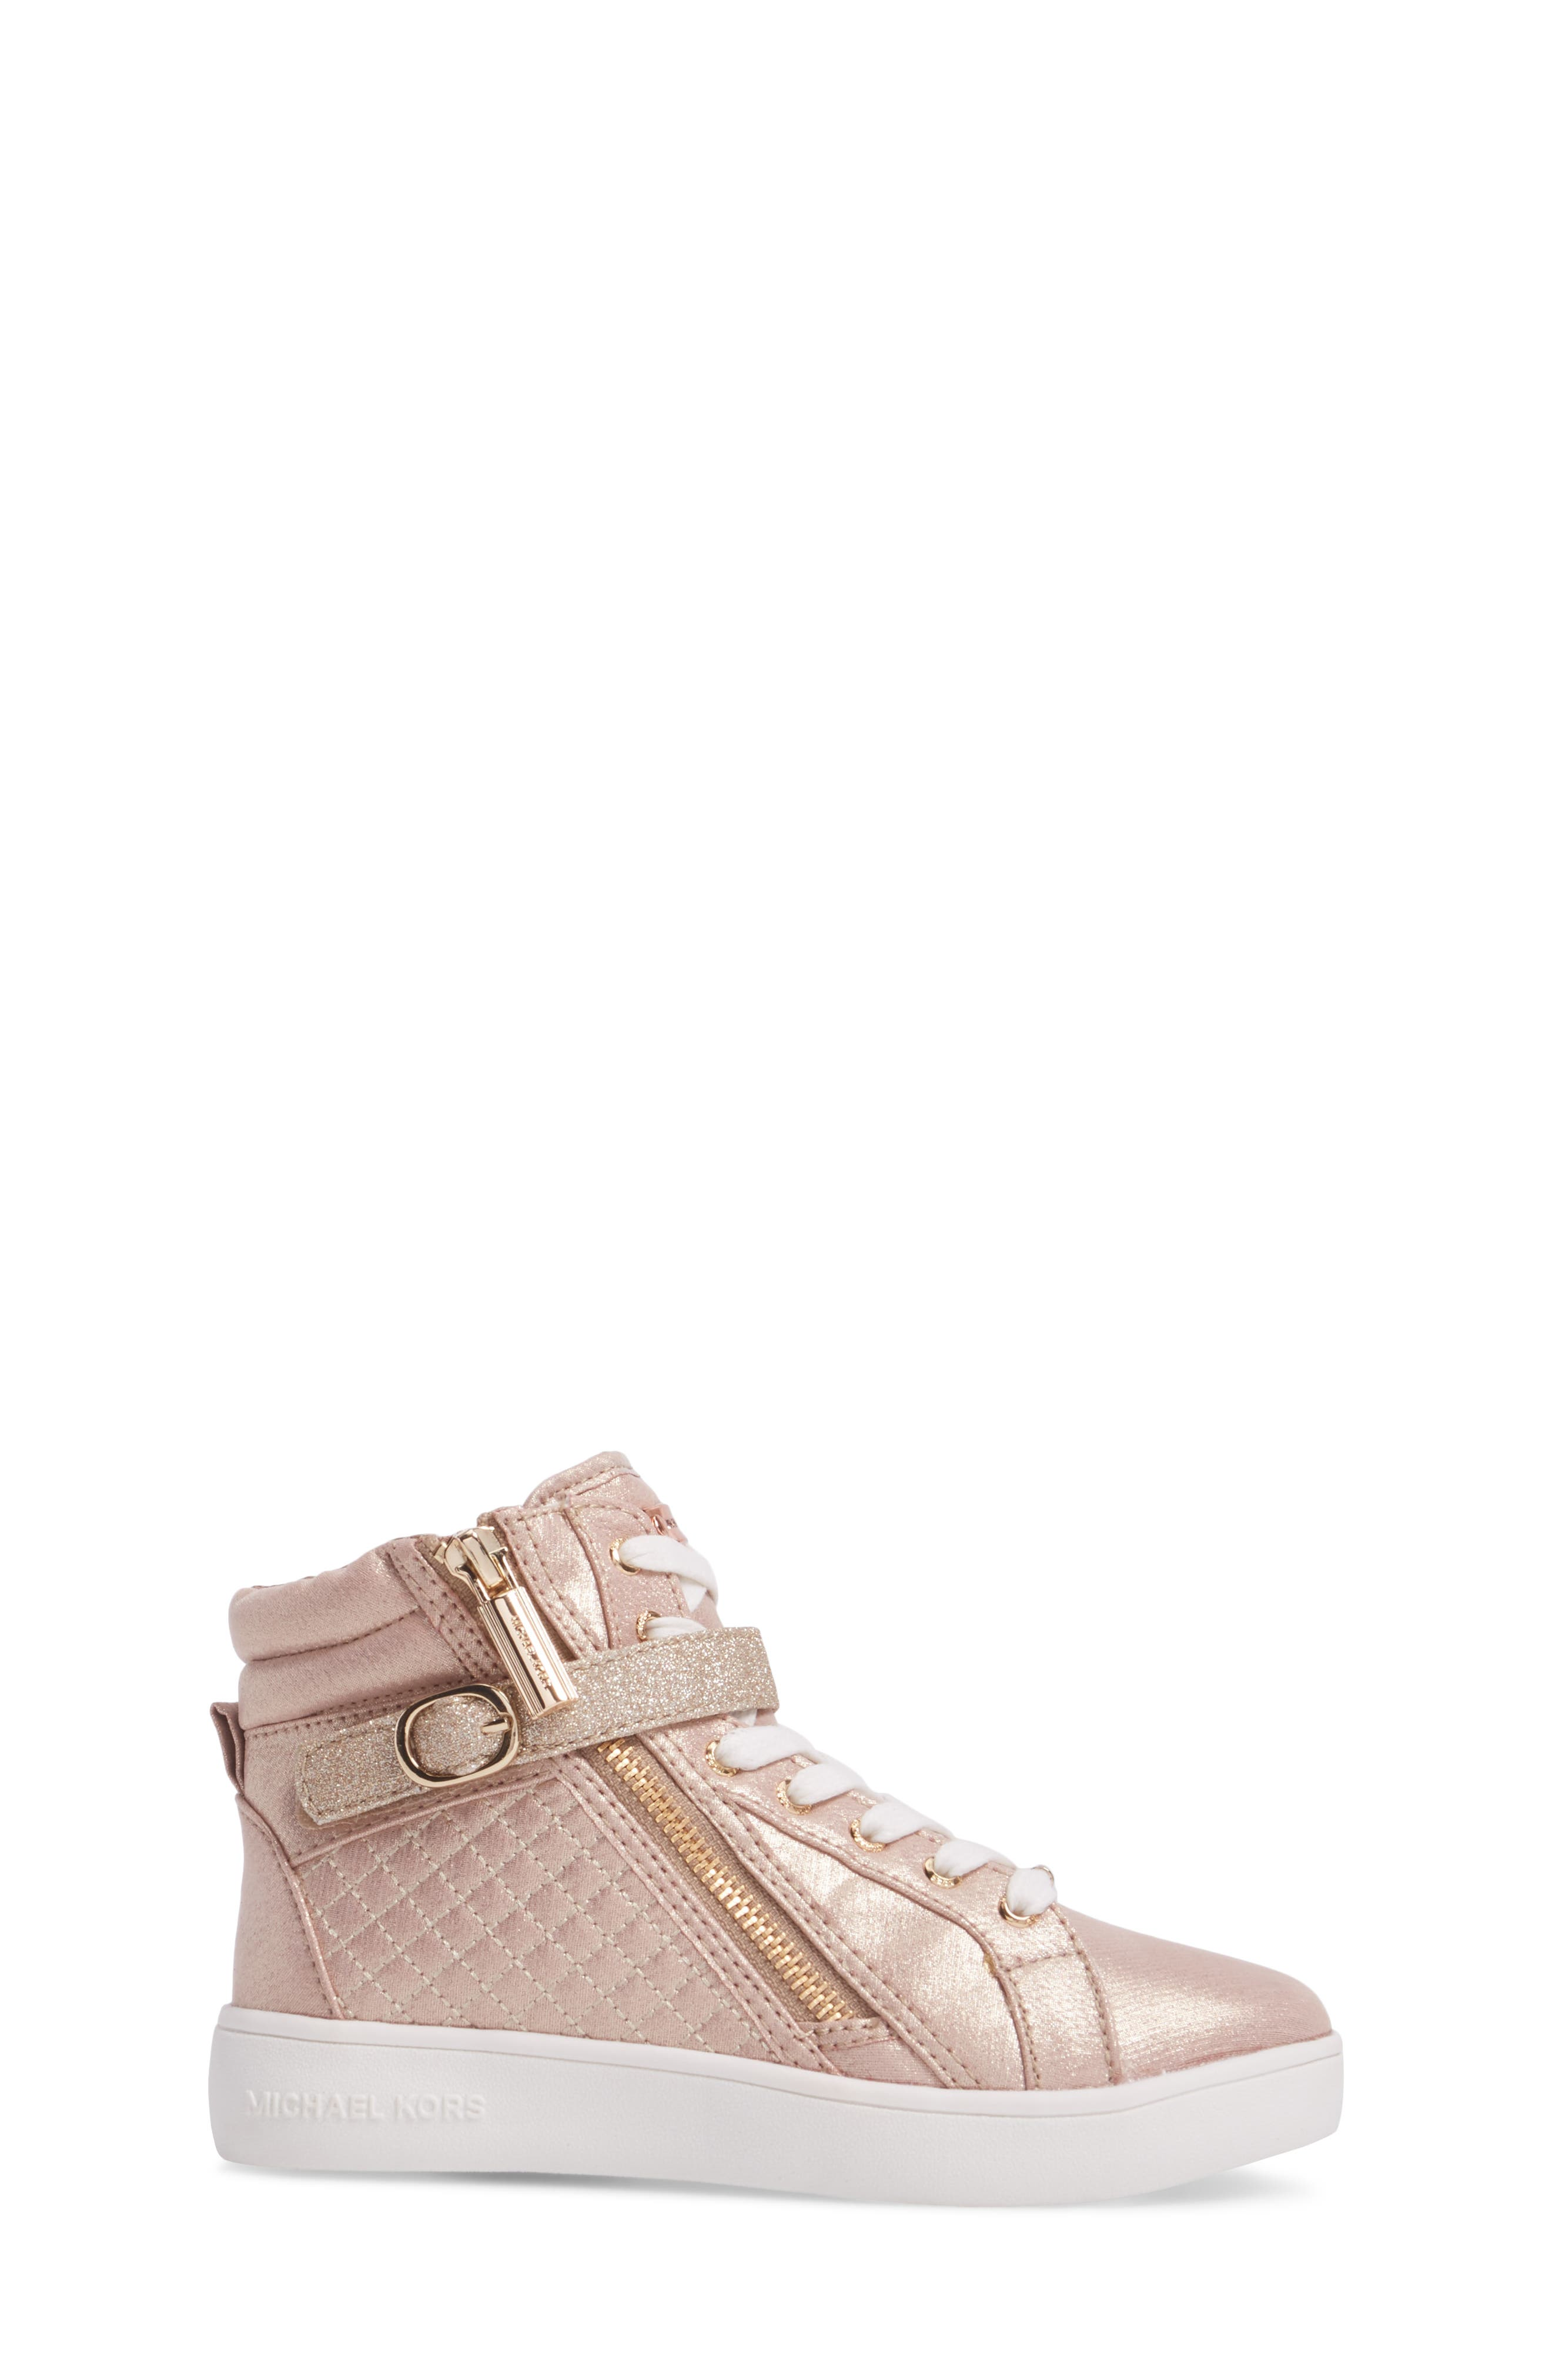 Ivy Rio Glittery High Top Sneaker,                             Alternate thumbnail 3, color,                             Rose Gold